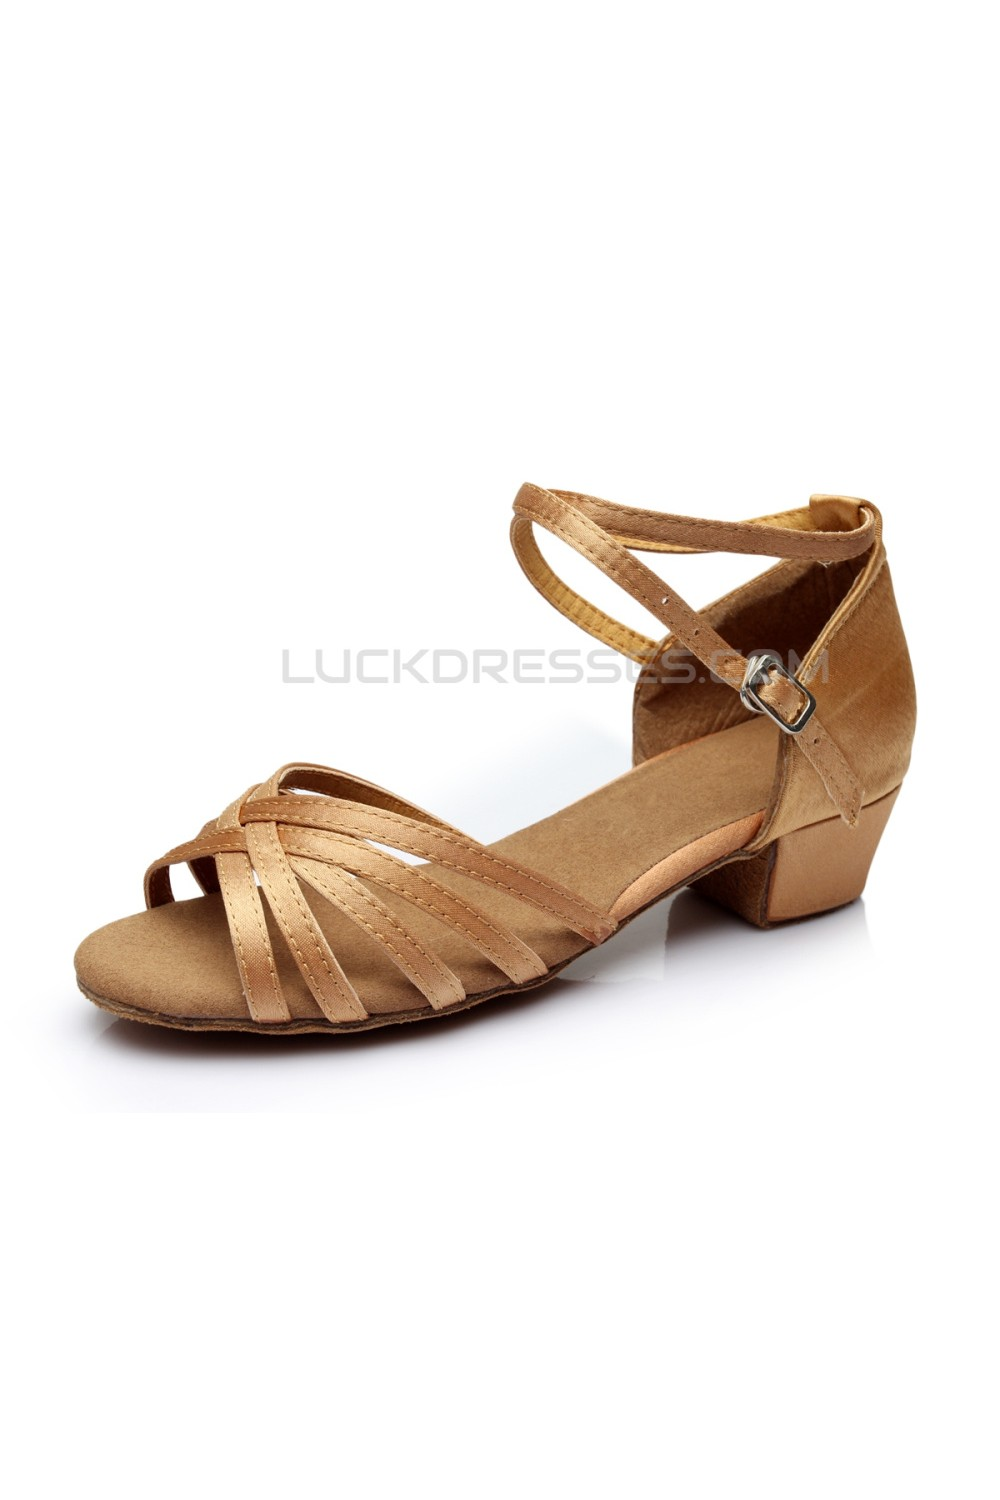 Women s Kids  Heels Sandals Latin With Ankle Strap Nude Satin Dance Shoes  D601013 02e8e32a45